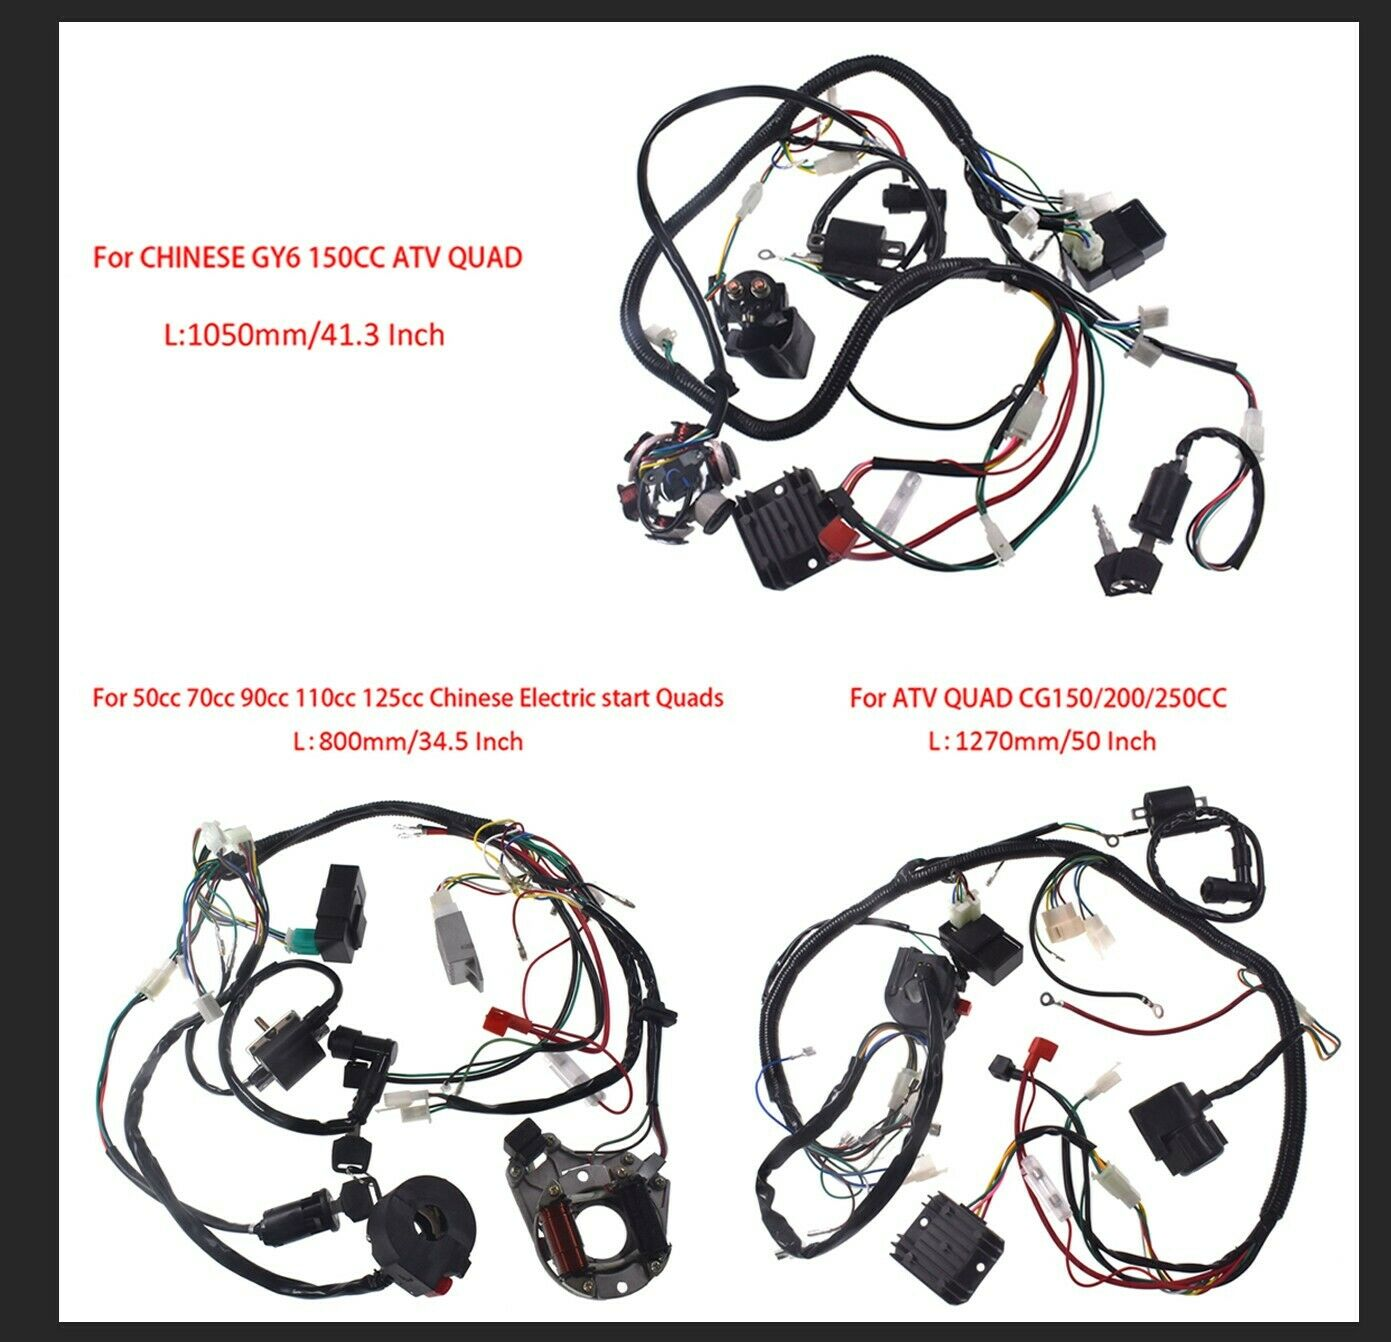 Wire Harness Assembly Wiring Kit Fits  GY6 150cc 50-125cc Quad CG150cc Go Kart  good quality